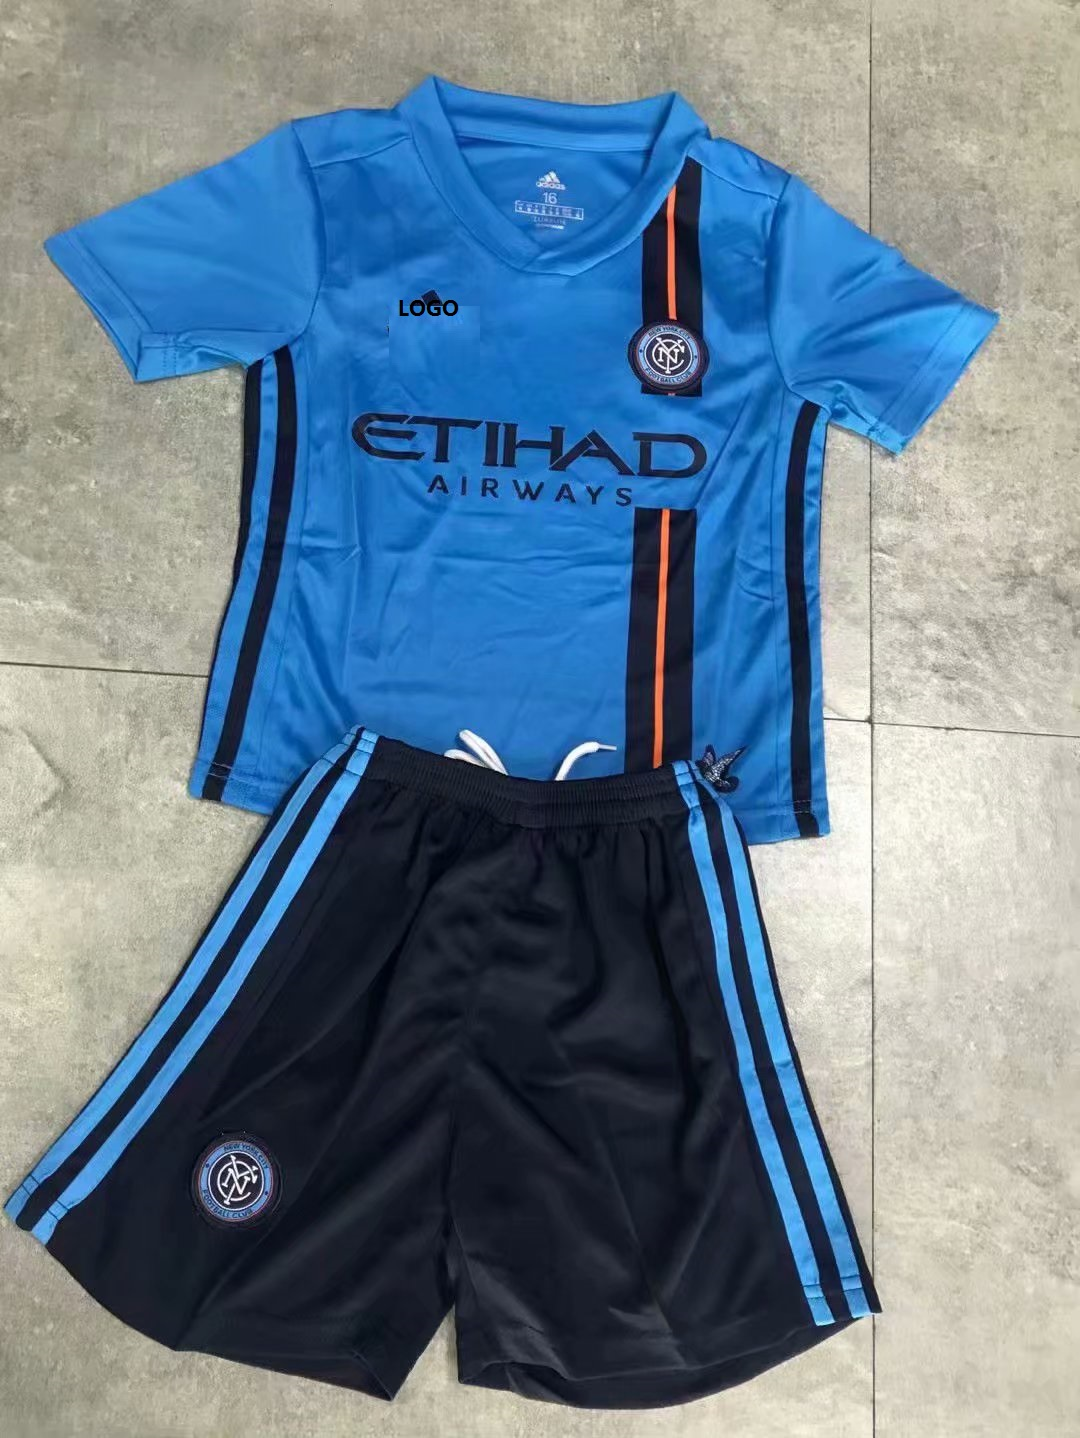 new arrival 84316 7015d 2018-19 Adult New York City FC Home Jersey Uniforms Blue Football Kits